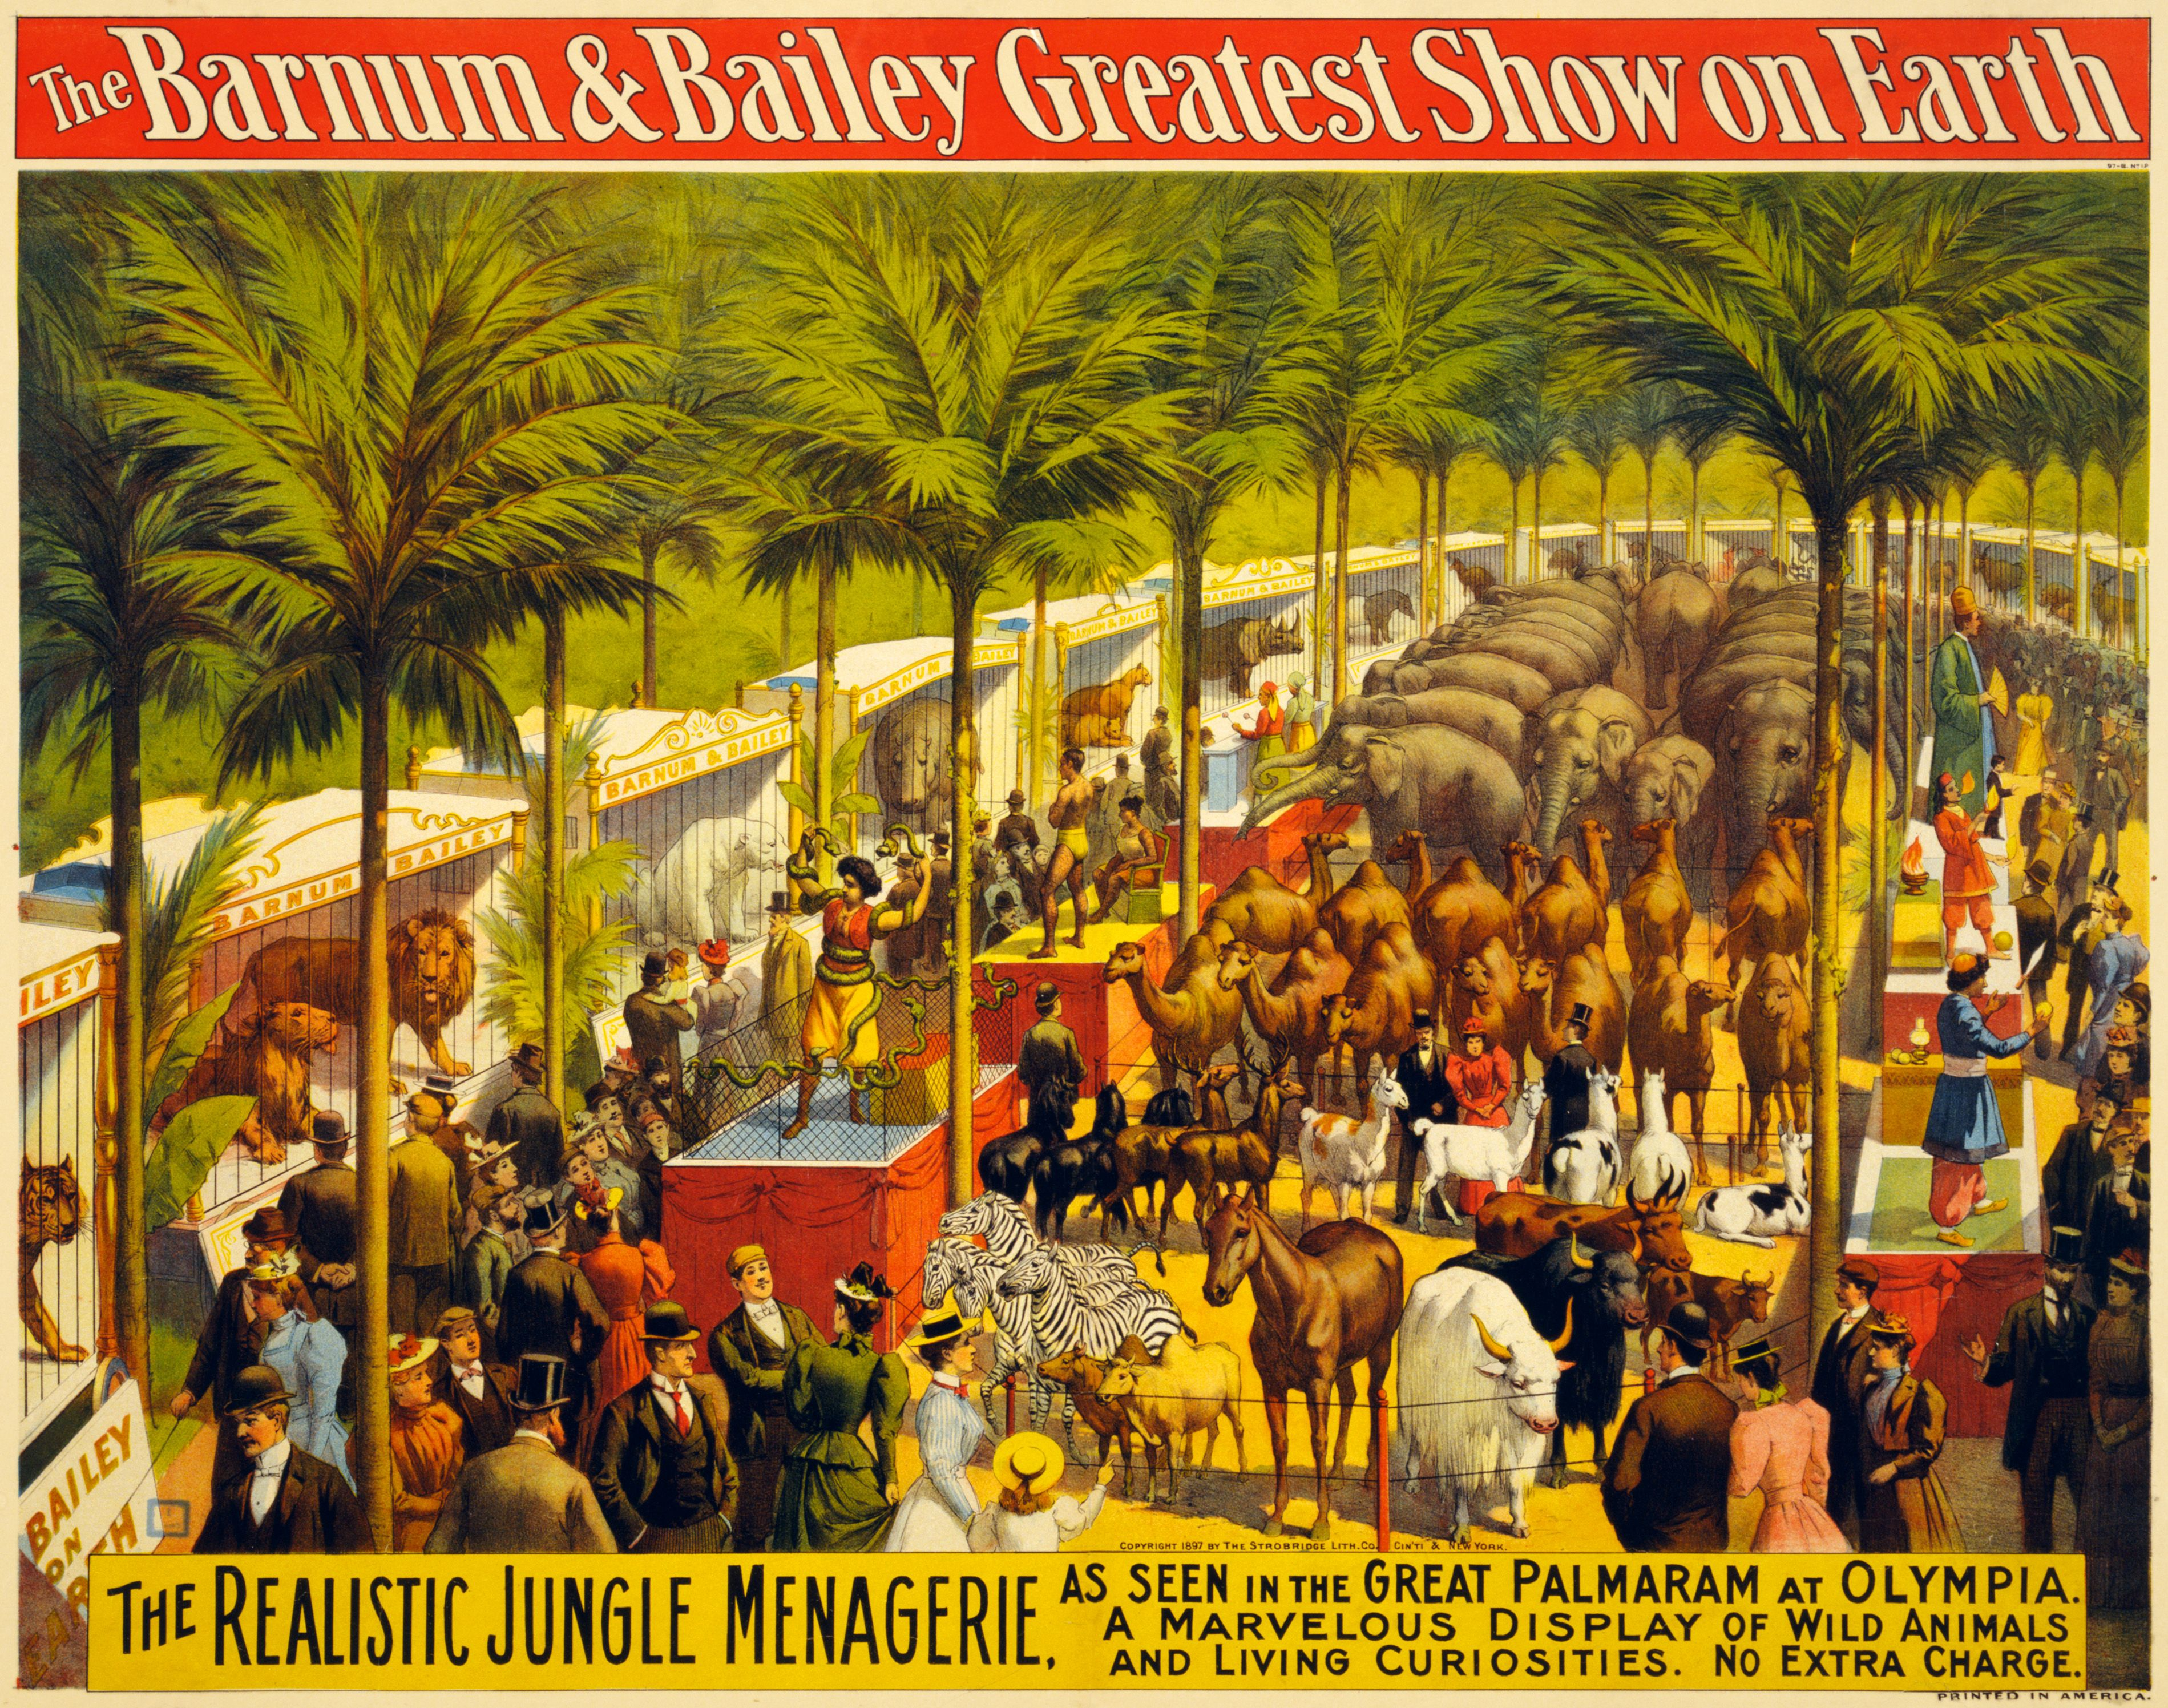 The realistic jungle menagerie poster for Barnum & Bailey, 1897 ...